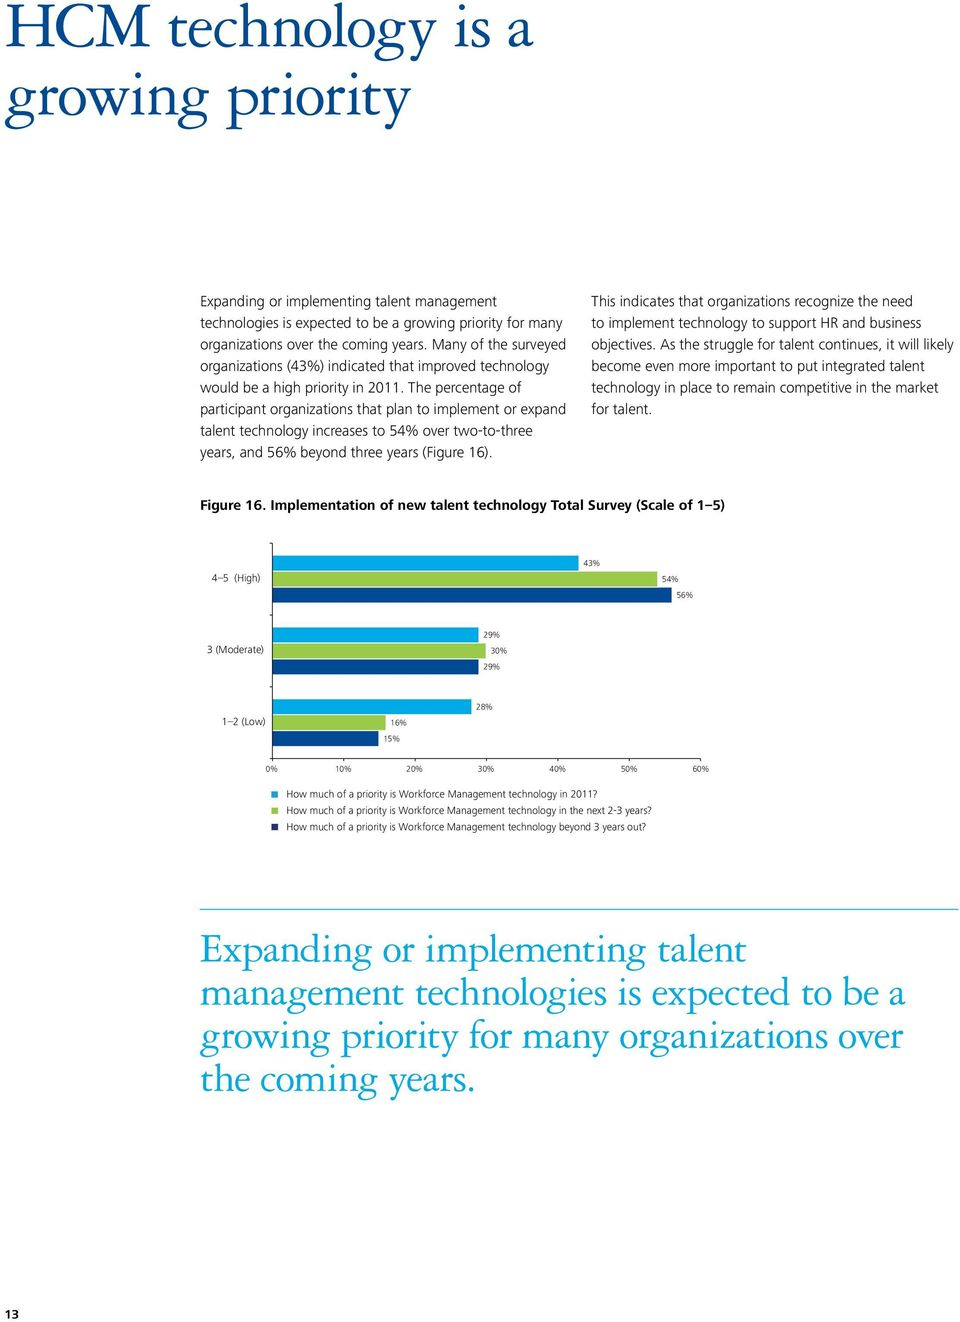 The percentage of participant organizations that plan to implement or expand talent technology increases to 54% over two-to-three years, and 56% beyond three years (Figure 16).